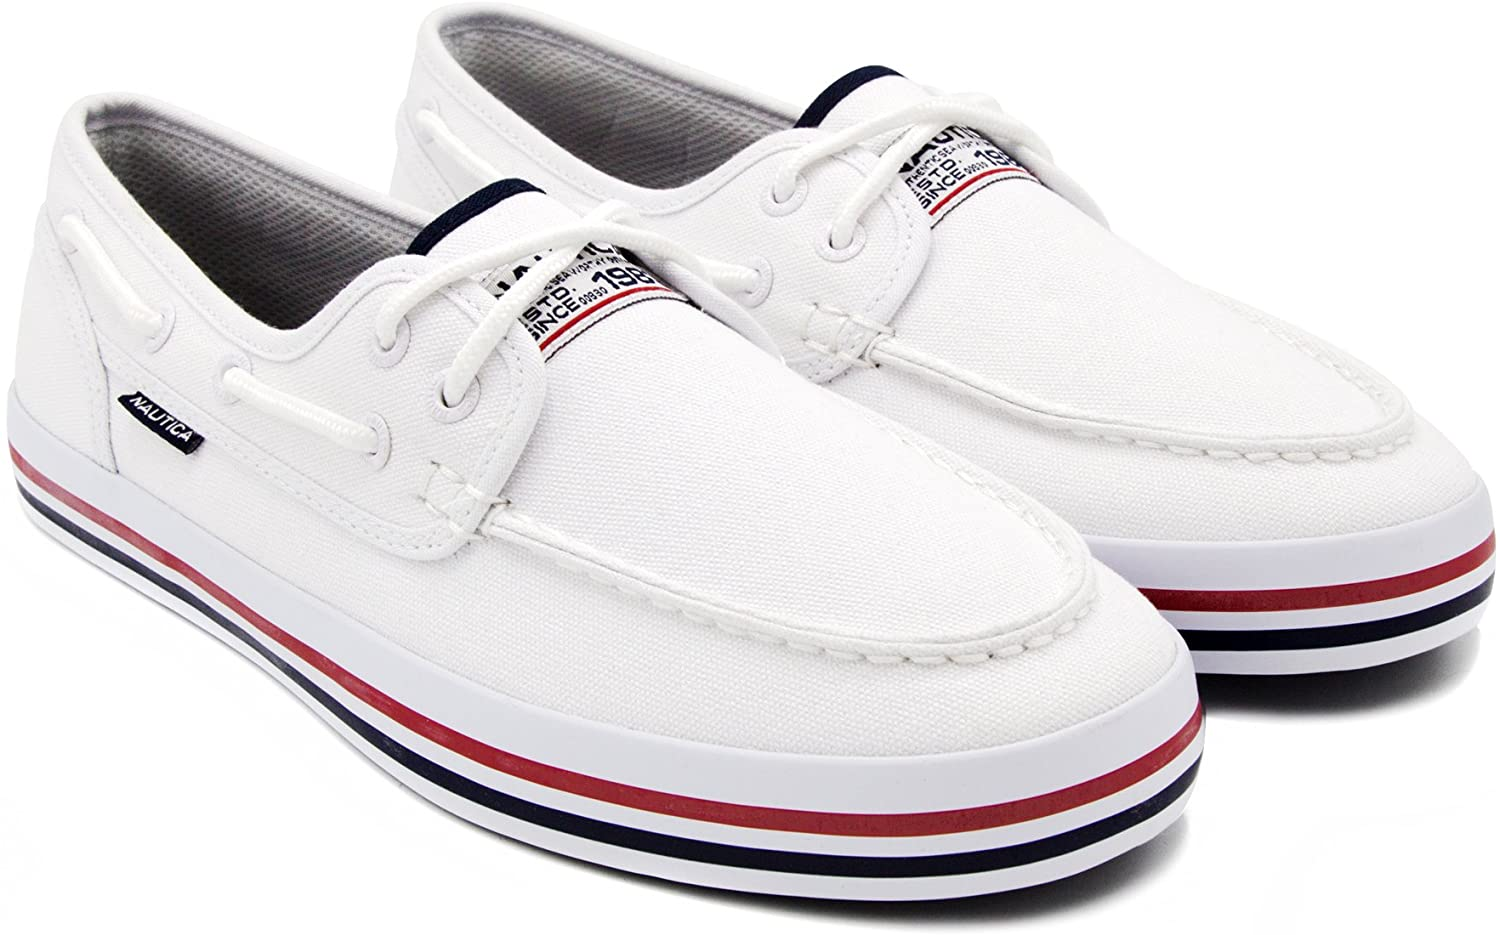 Nautica Men's Spinnaker Lace-Up Boat shoes, Casual Loafer, Fashion Sneaker-White Heritage-9.5